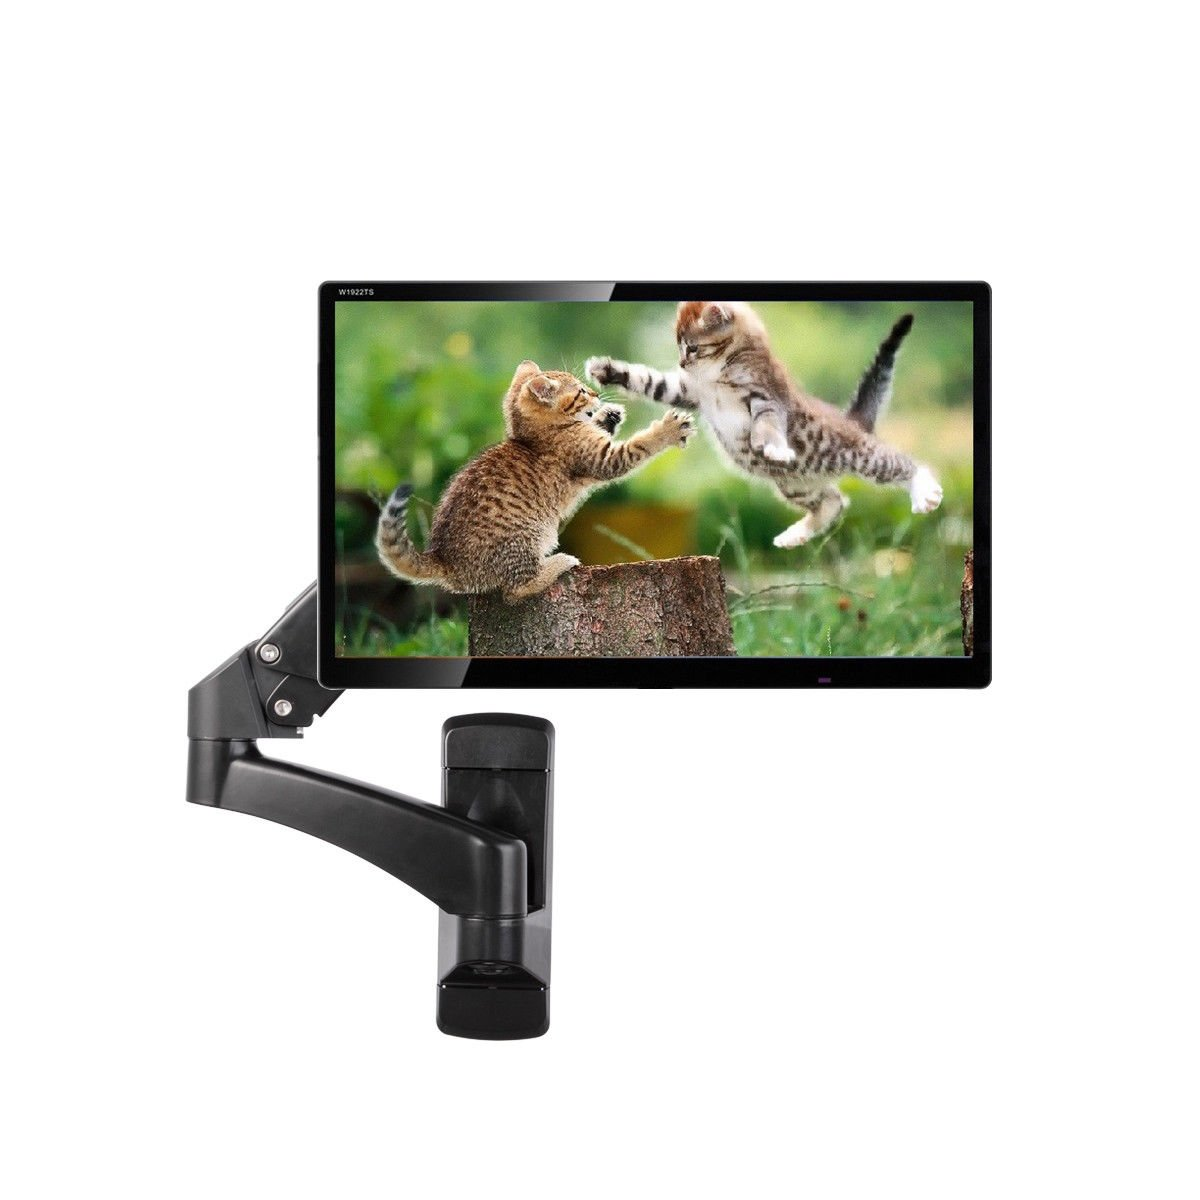 Tangkula Monitor Wall Mount Hydraulic Adjustable Articulating Extension for 32 To 42'' Up To 51lbs TV Monitor Bracket